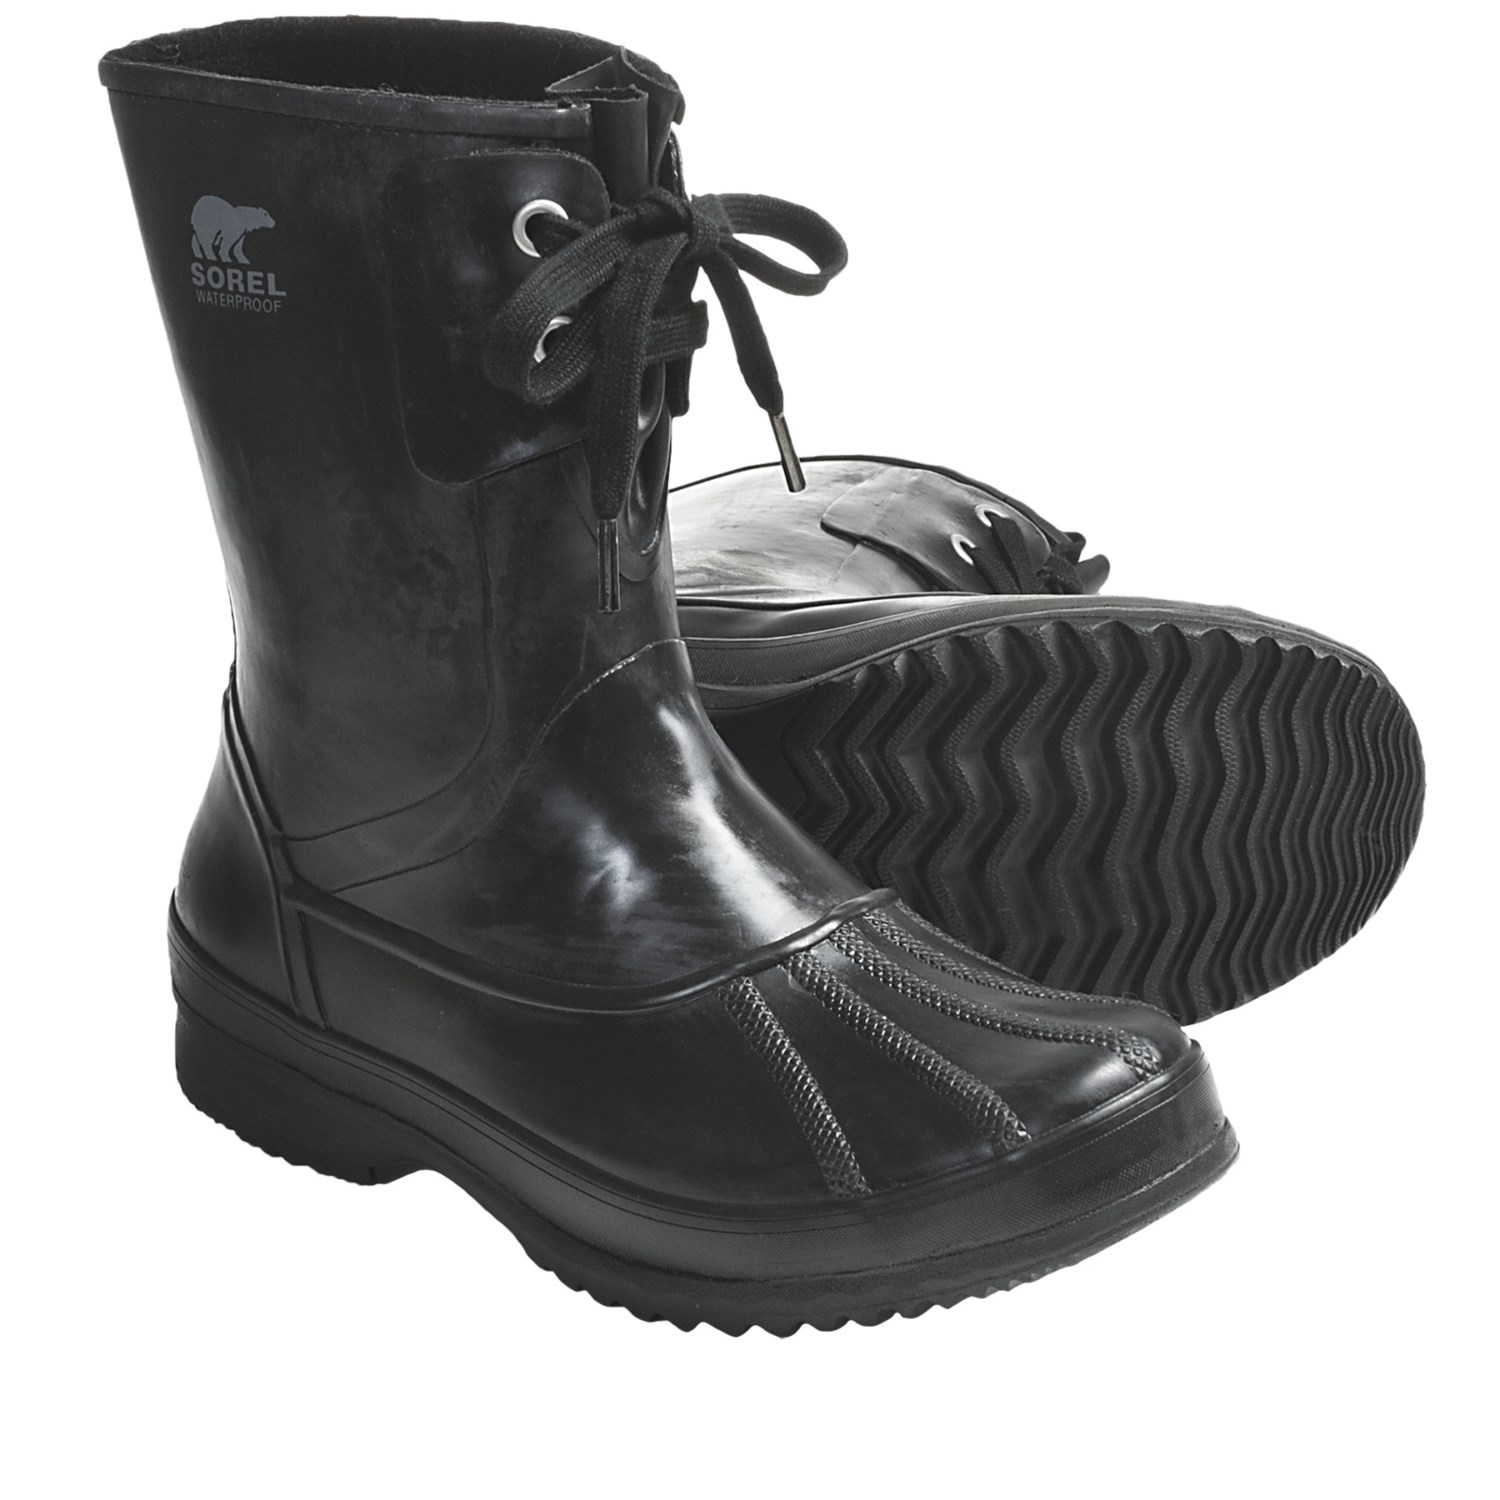 sorel woodbine welly rubber boots waterproof insulated